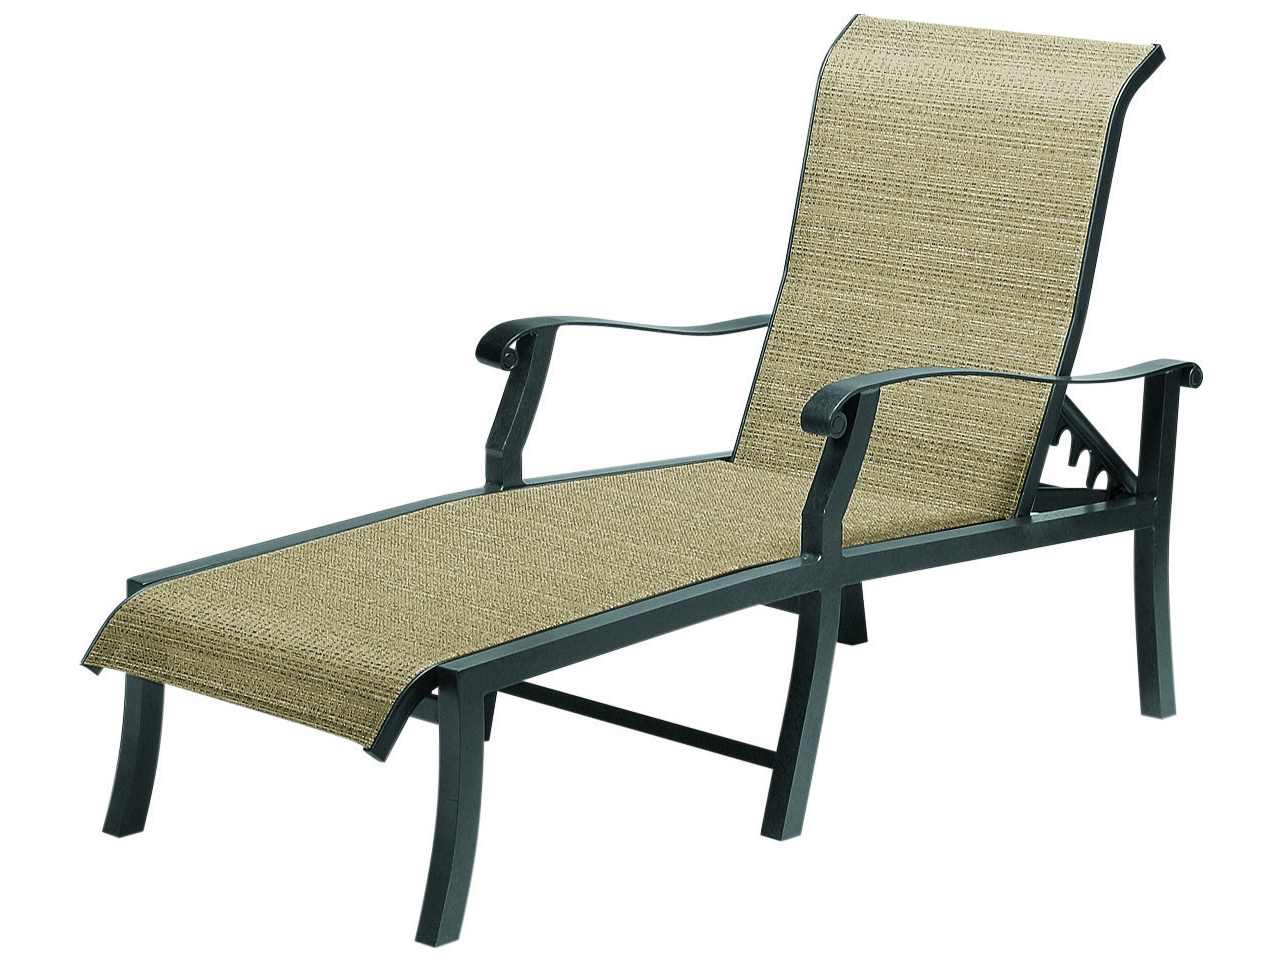 Woodard Cortland Sling Aluminum Chaise Lounge With Favorite Myers Outdoor Aluminum Mesh Chaise Lounges (Gallery 24 of 25)